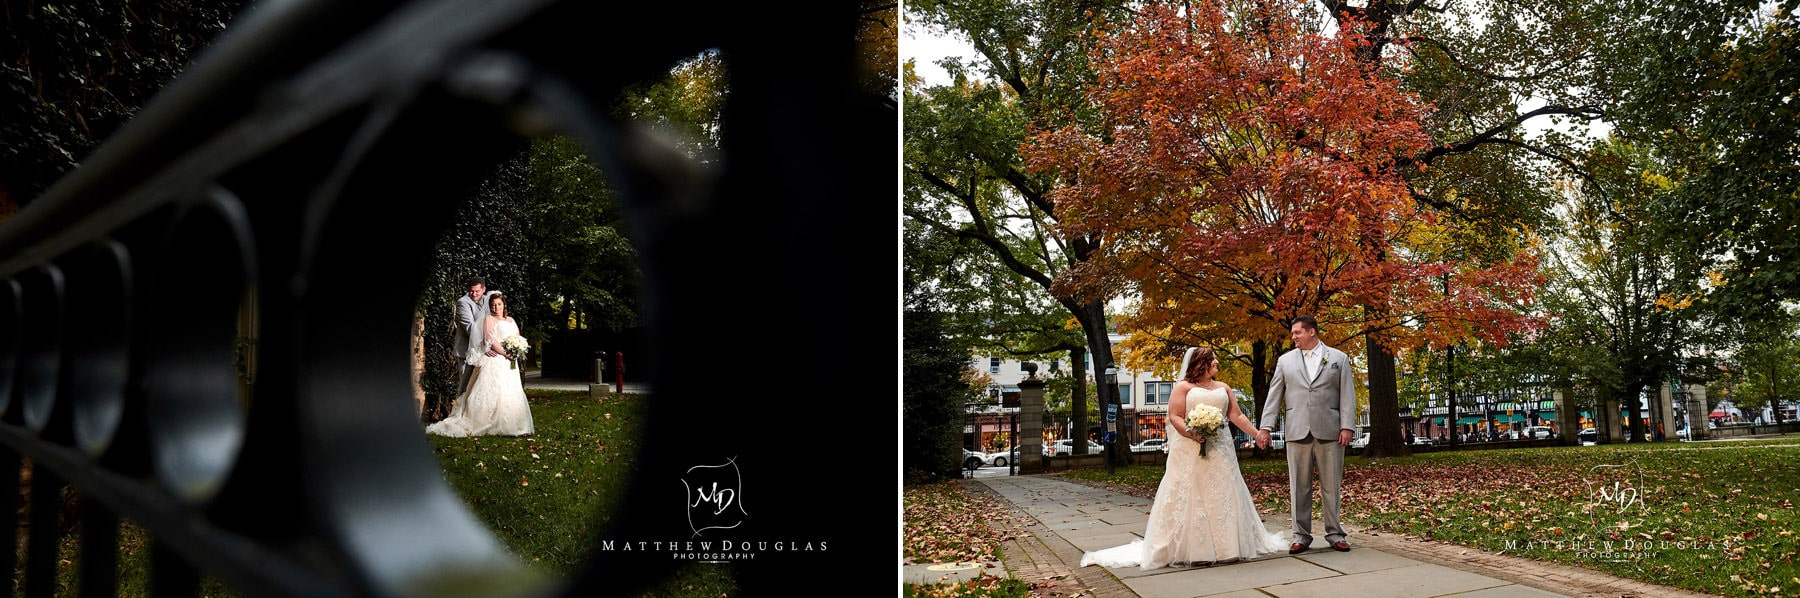 fall Princeton University wedding photo